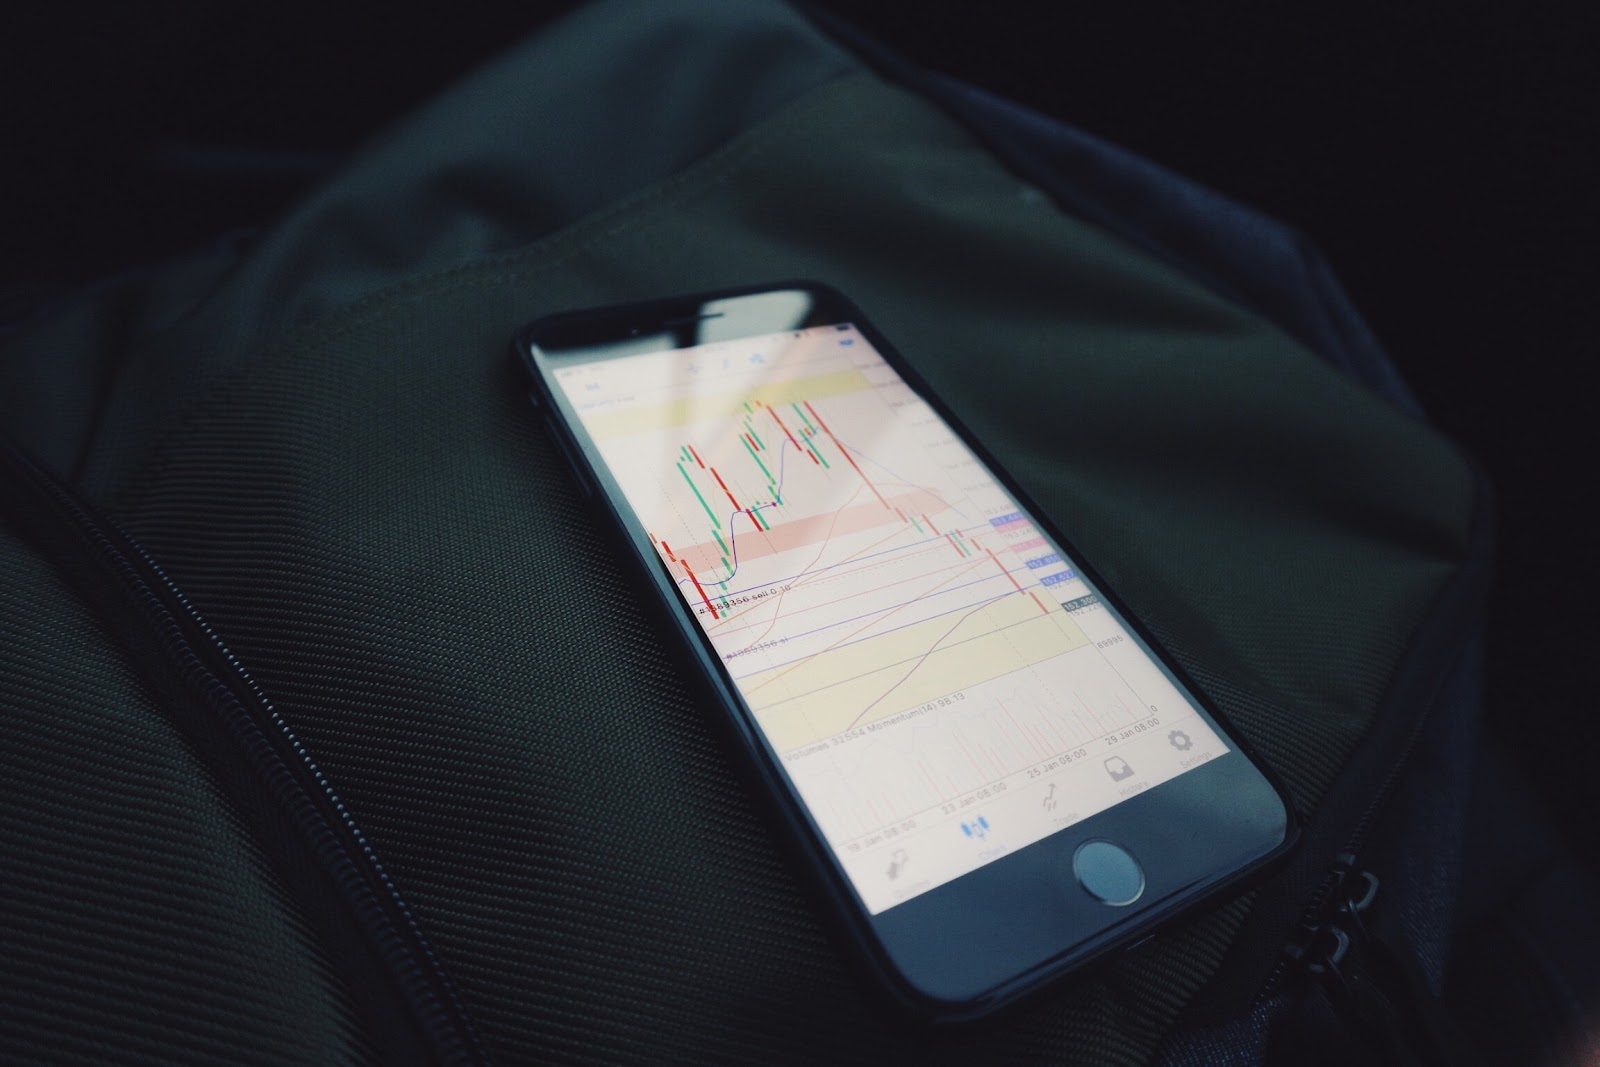 Smartphone on dark background displaying stock market on screen